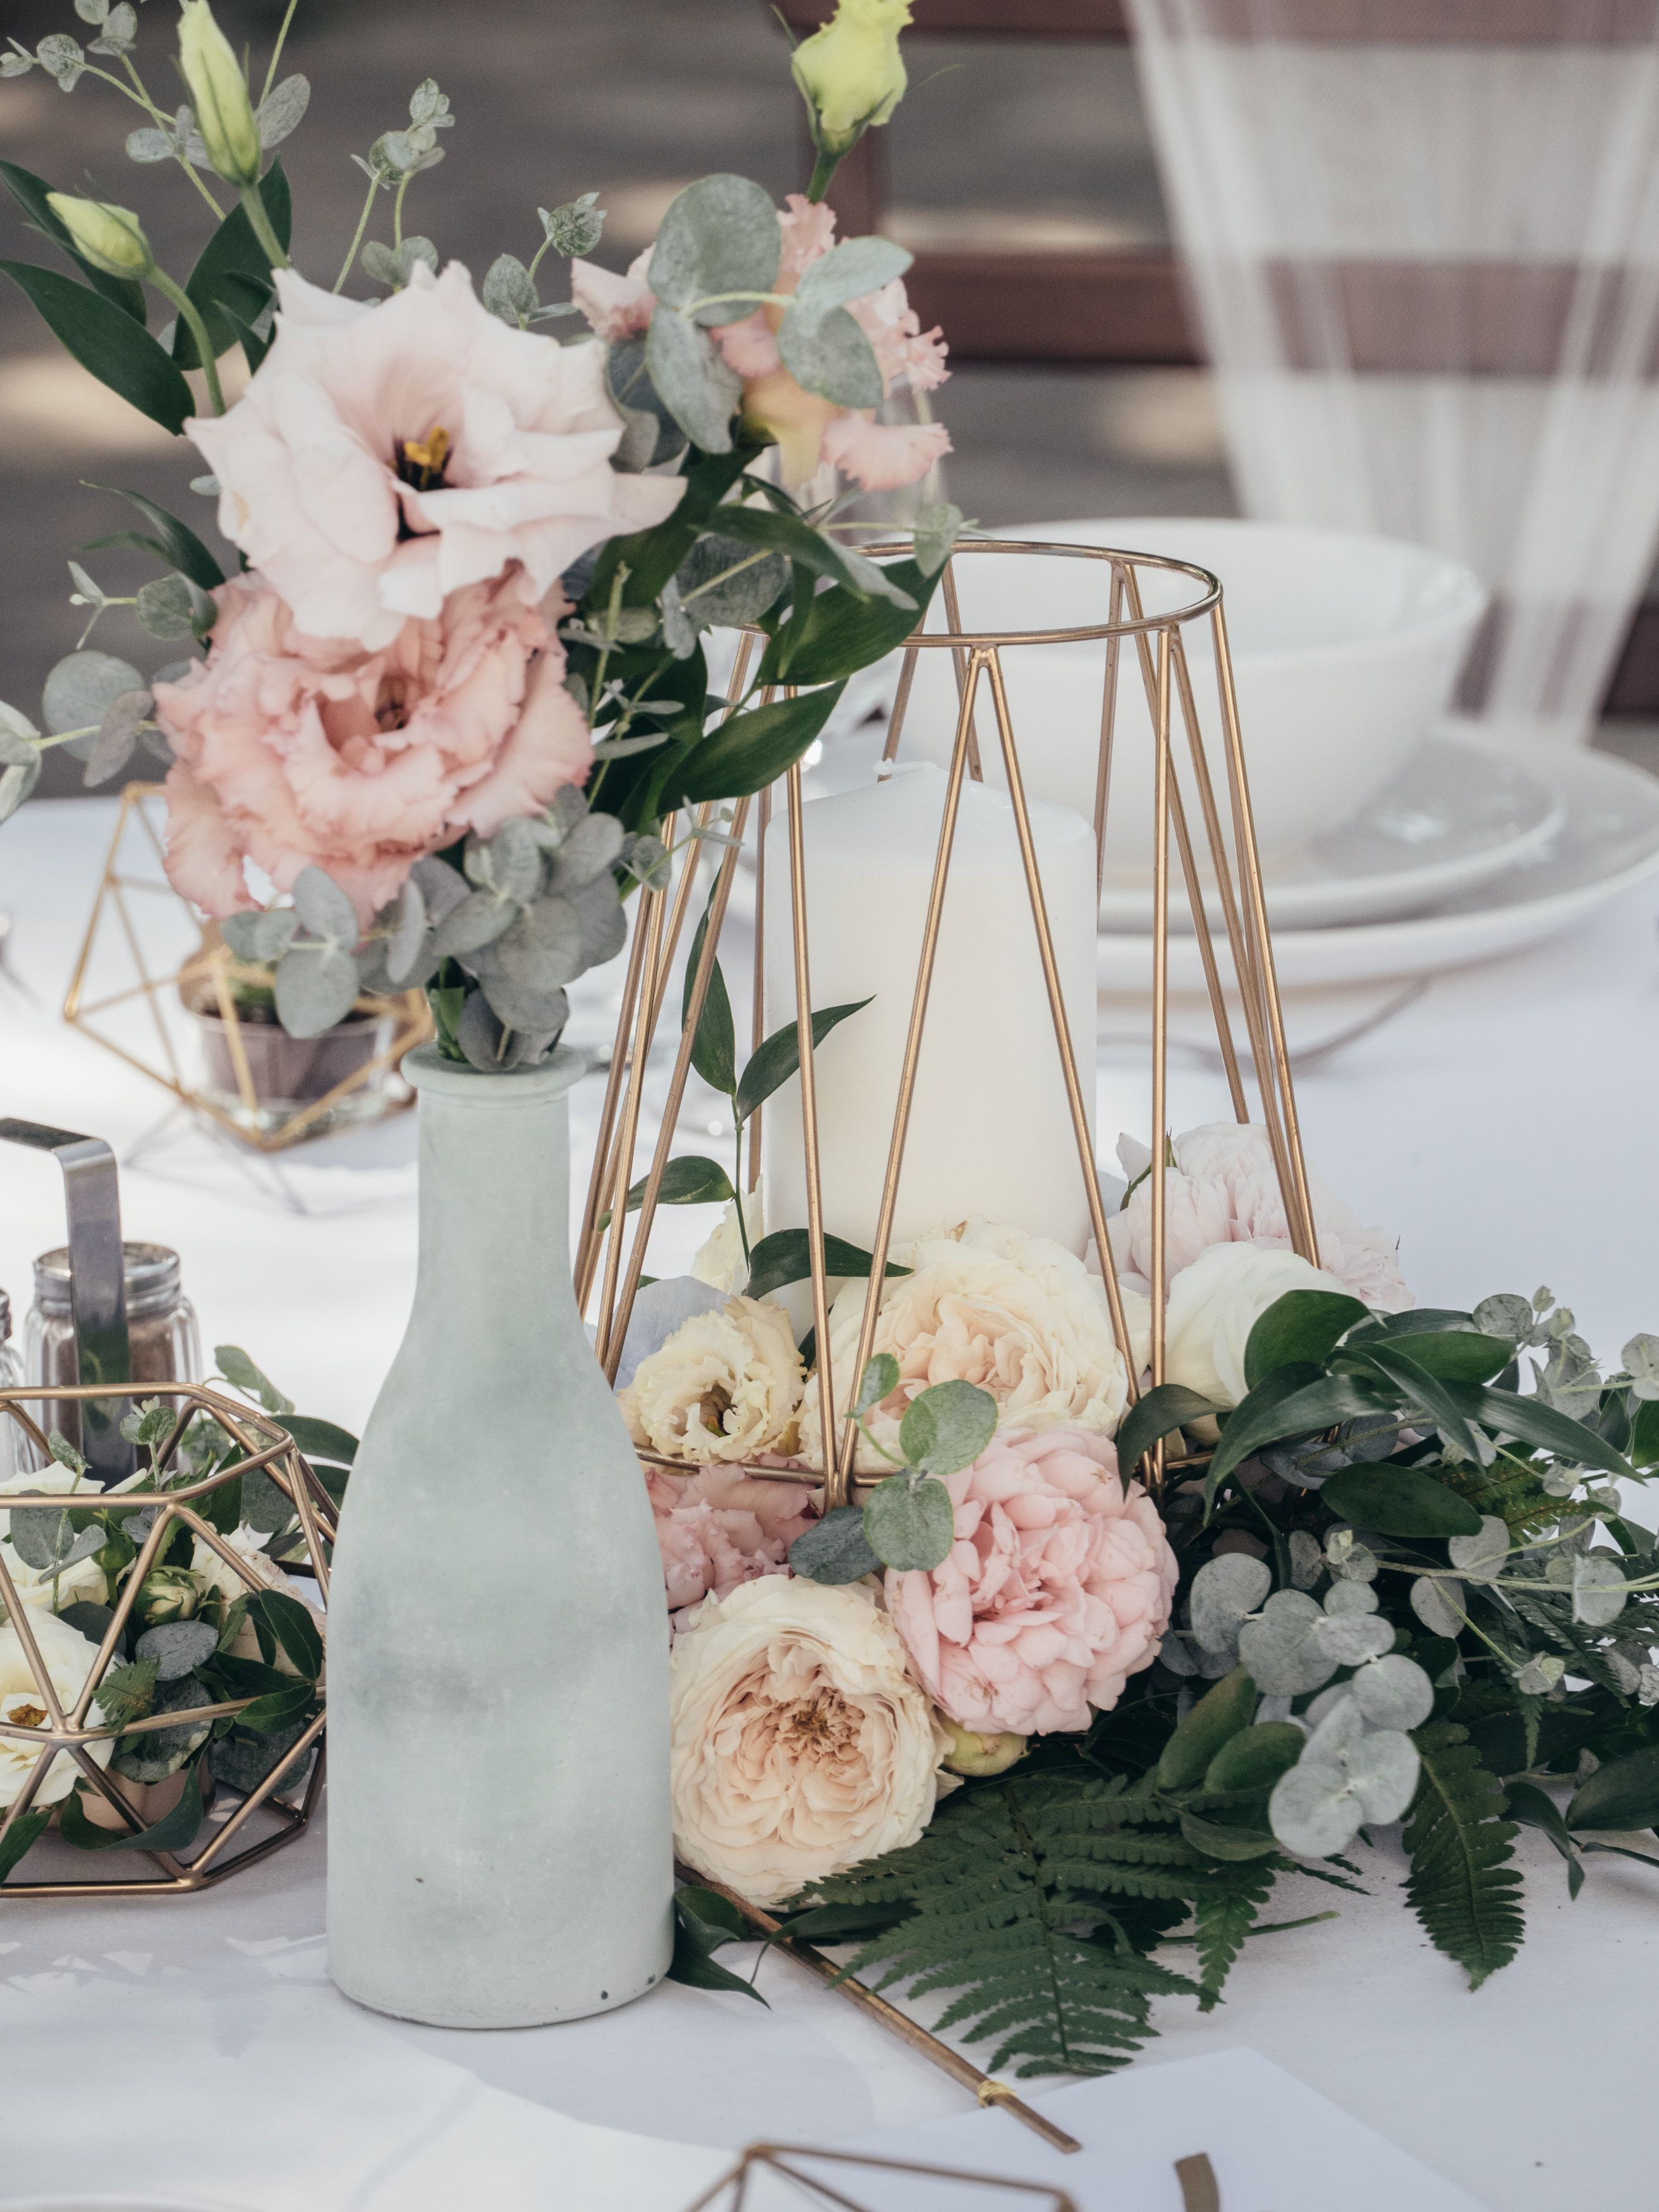 Copper Geometric Terrarium Hire For Wedding Decor And Centrepieces From The Artisan Wedding House In Copper Wedding Decor Artisan Wedding Wedding Centerpieces